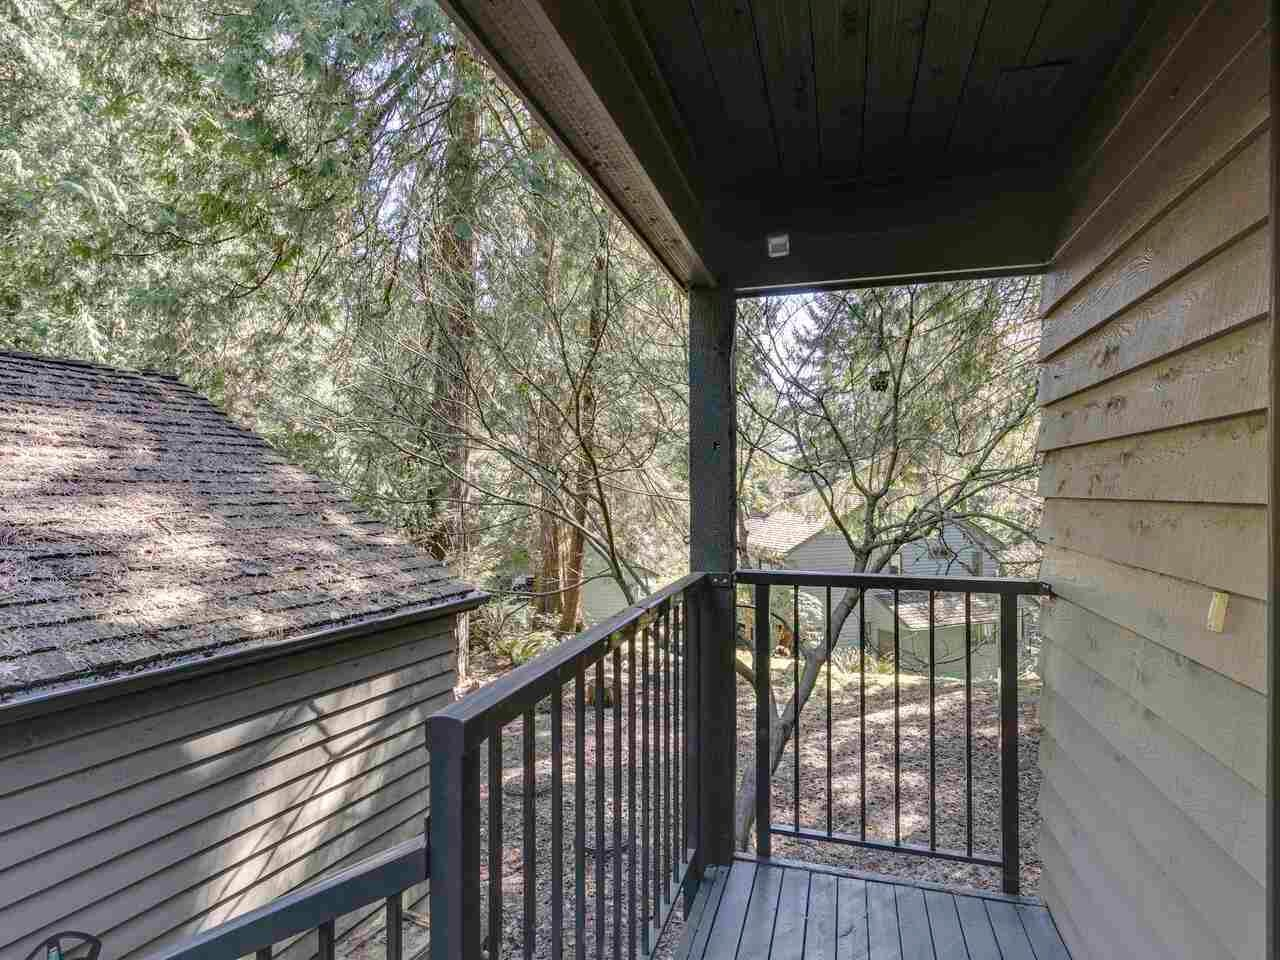 867 FREDERICK ROAD - Lynn Valley Townhouse for sale, 3 Bedrooms (R2569757) - #7